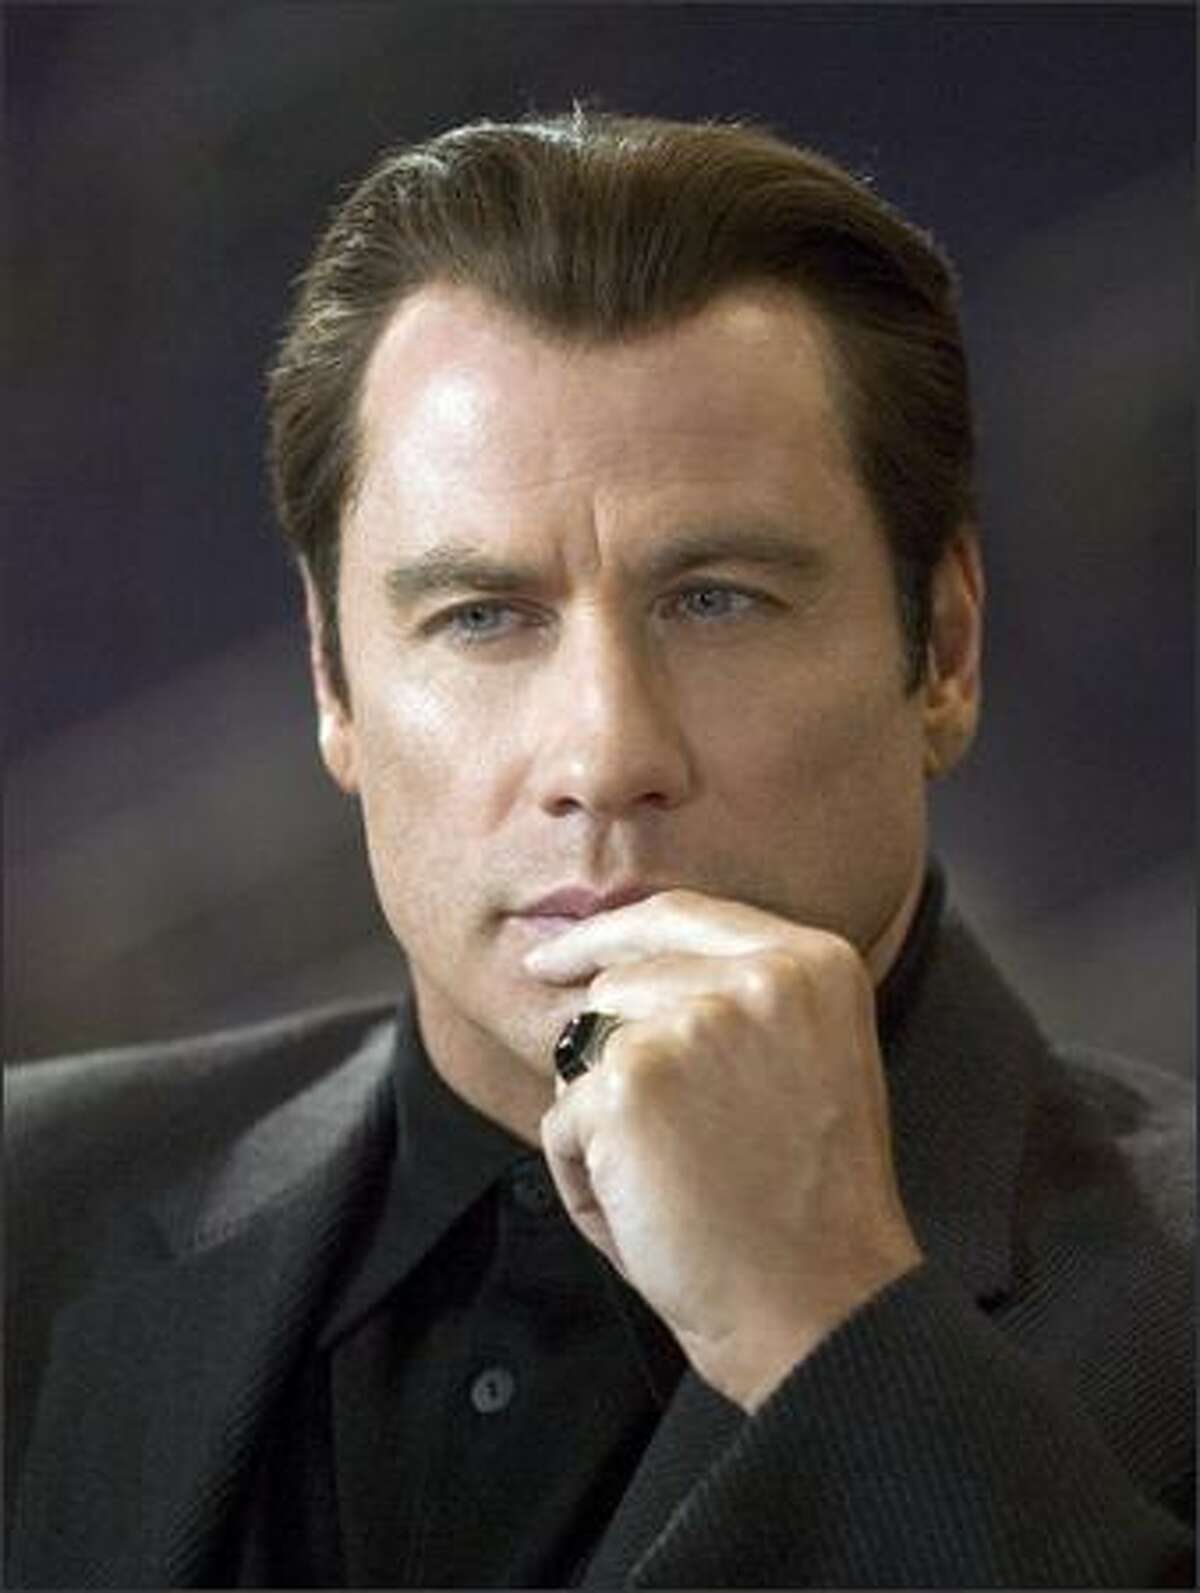 John Travolta stars as Chili Palmer, the same character he played in